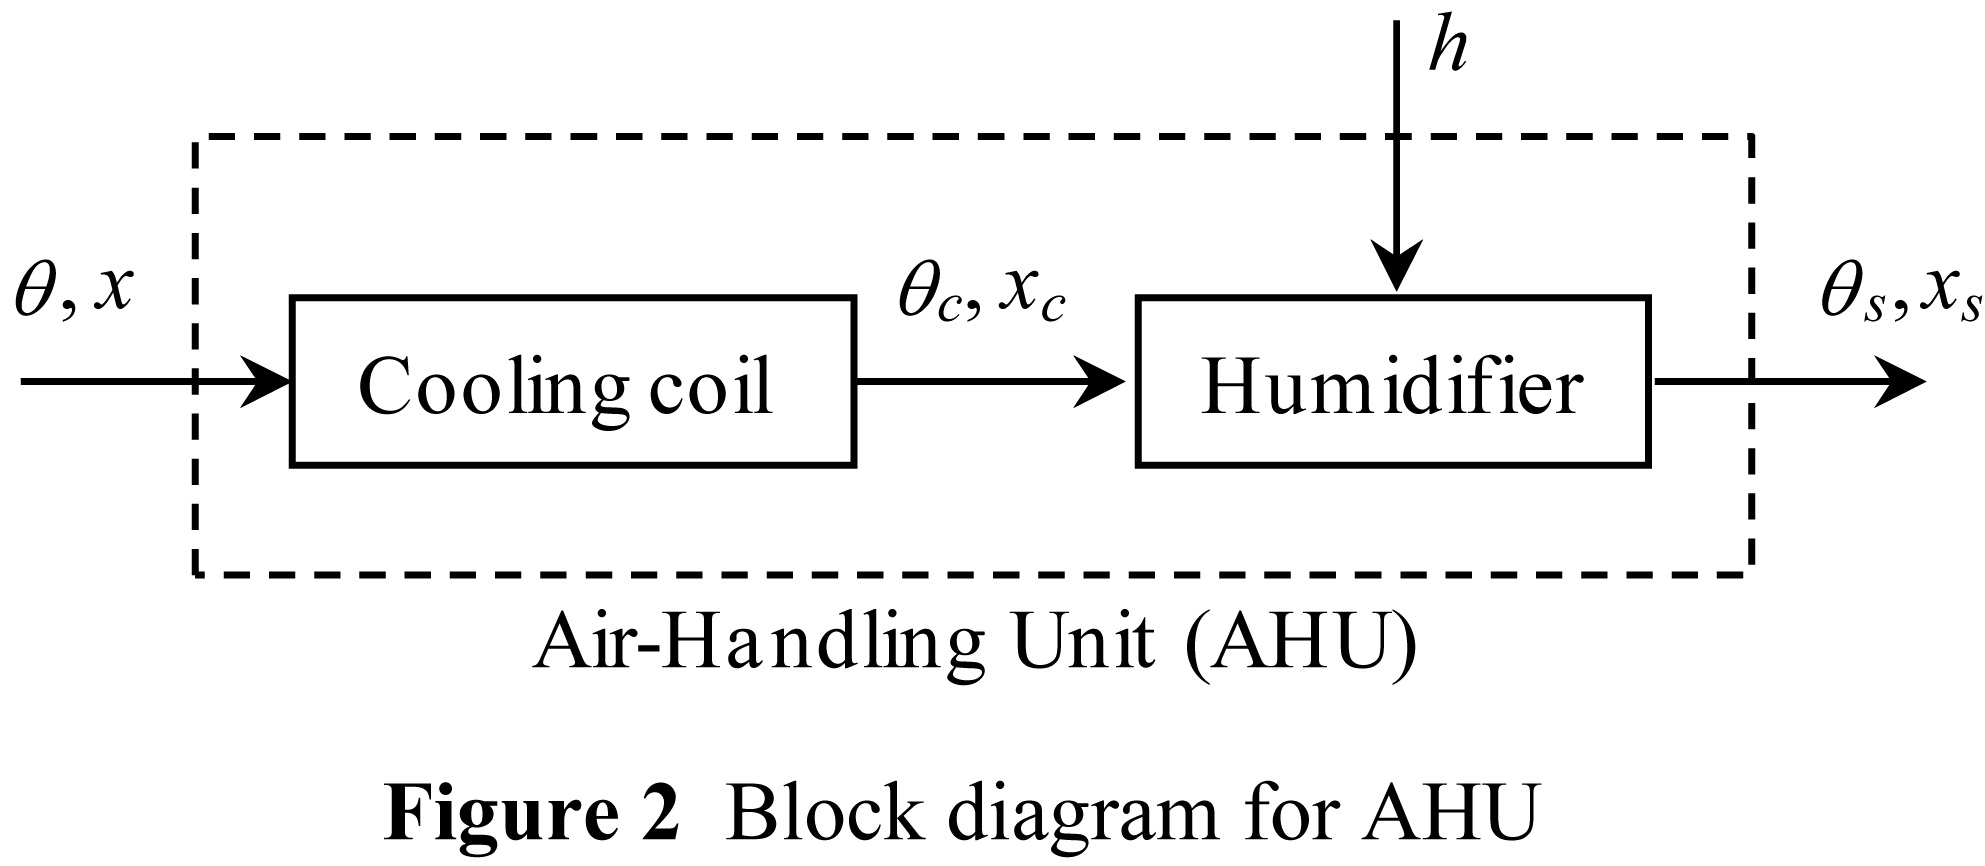 Air Conditioning Pid Control System With Adjustable Reset To Offset Schematic Figure 2